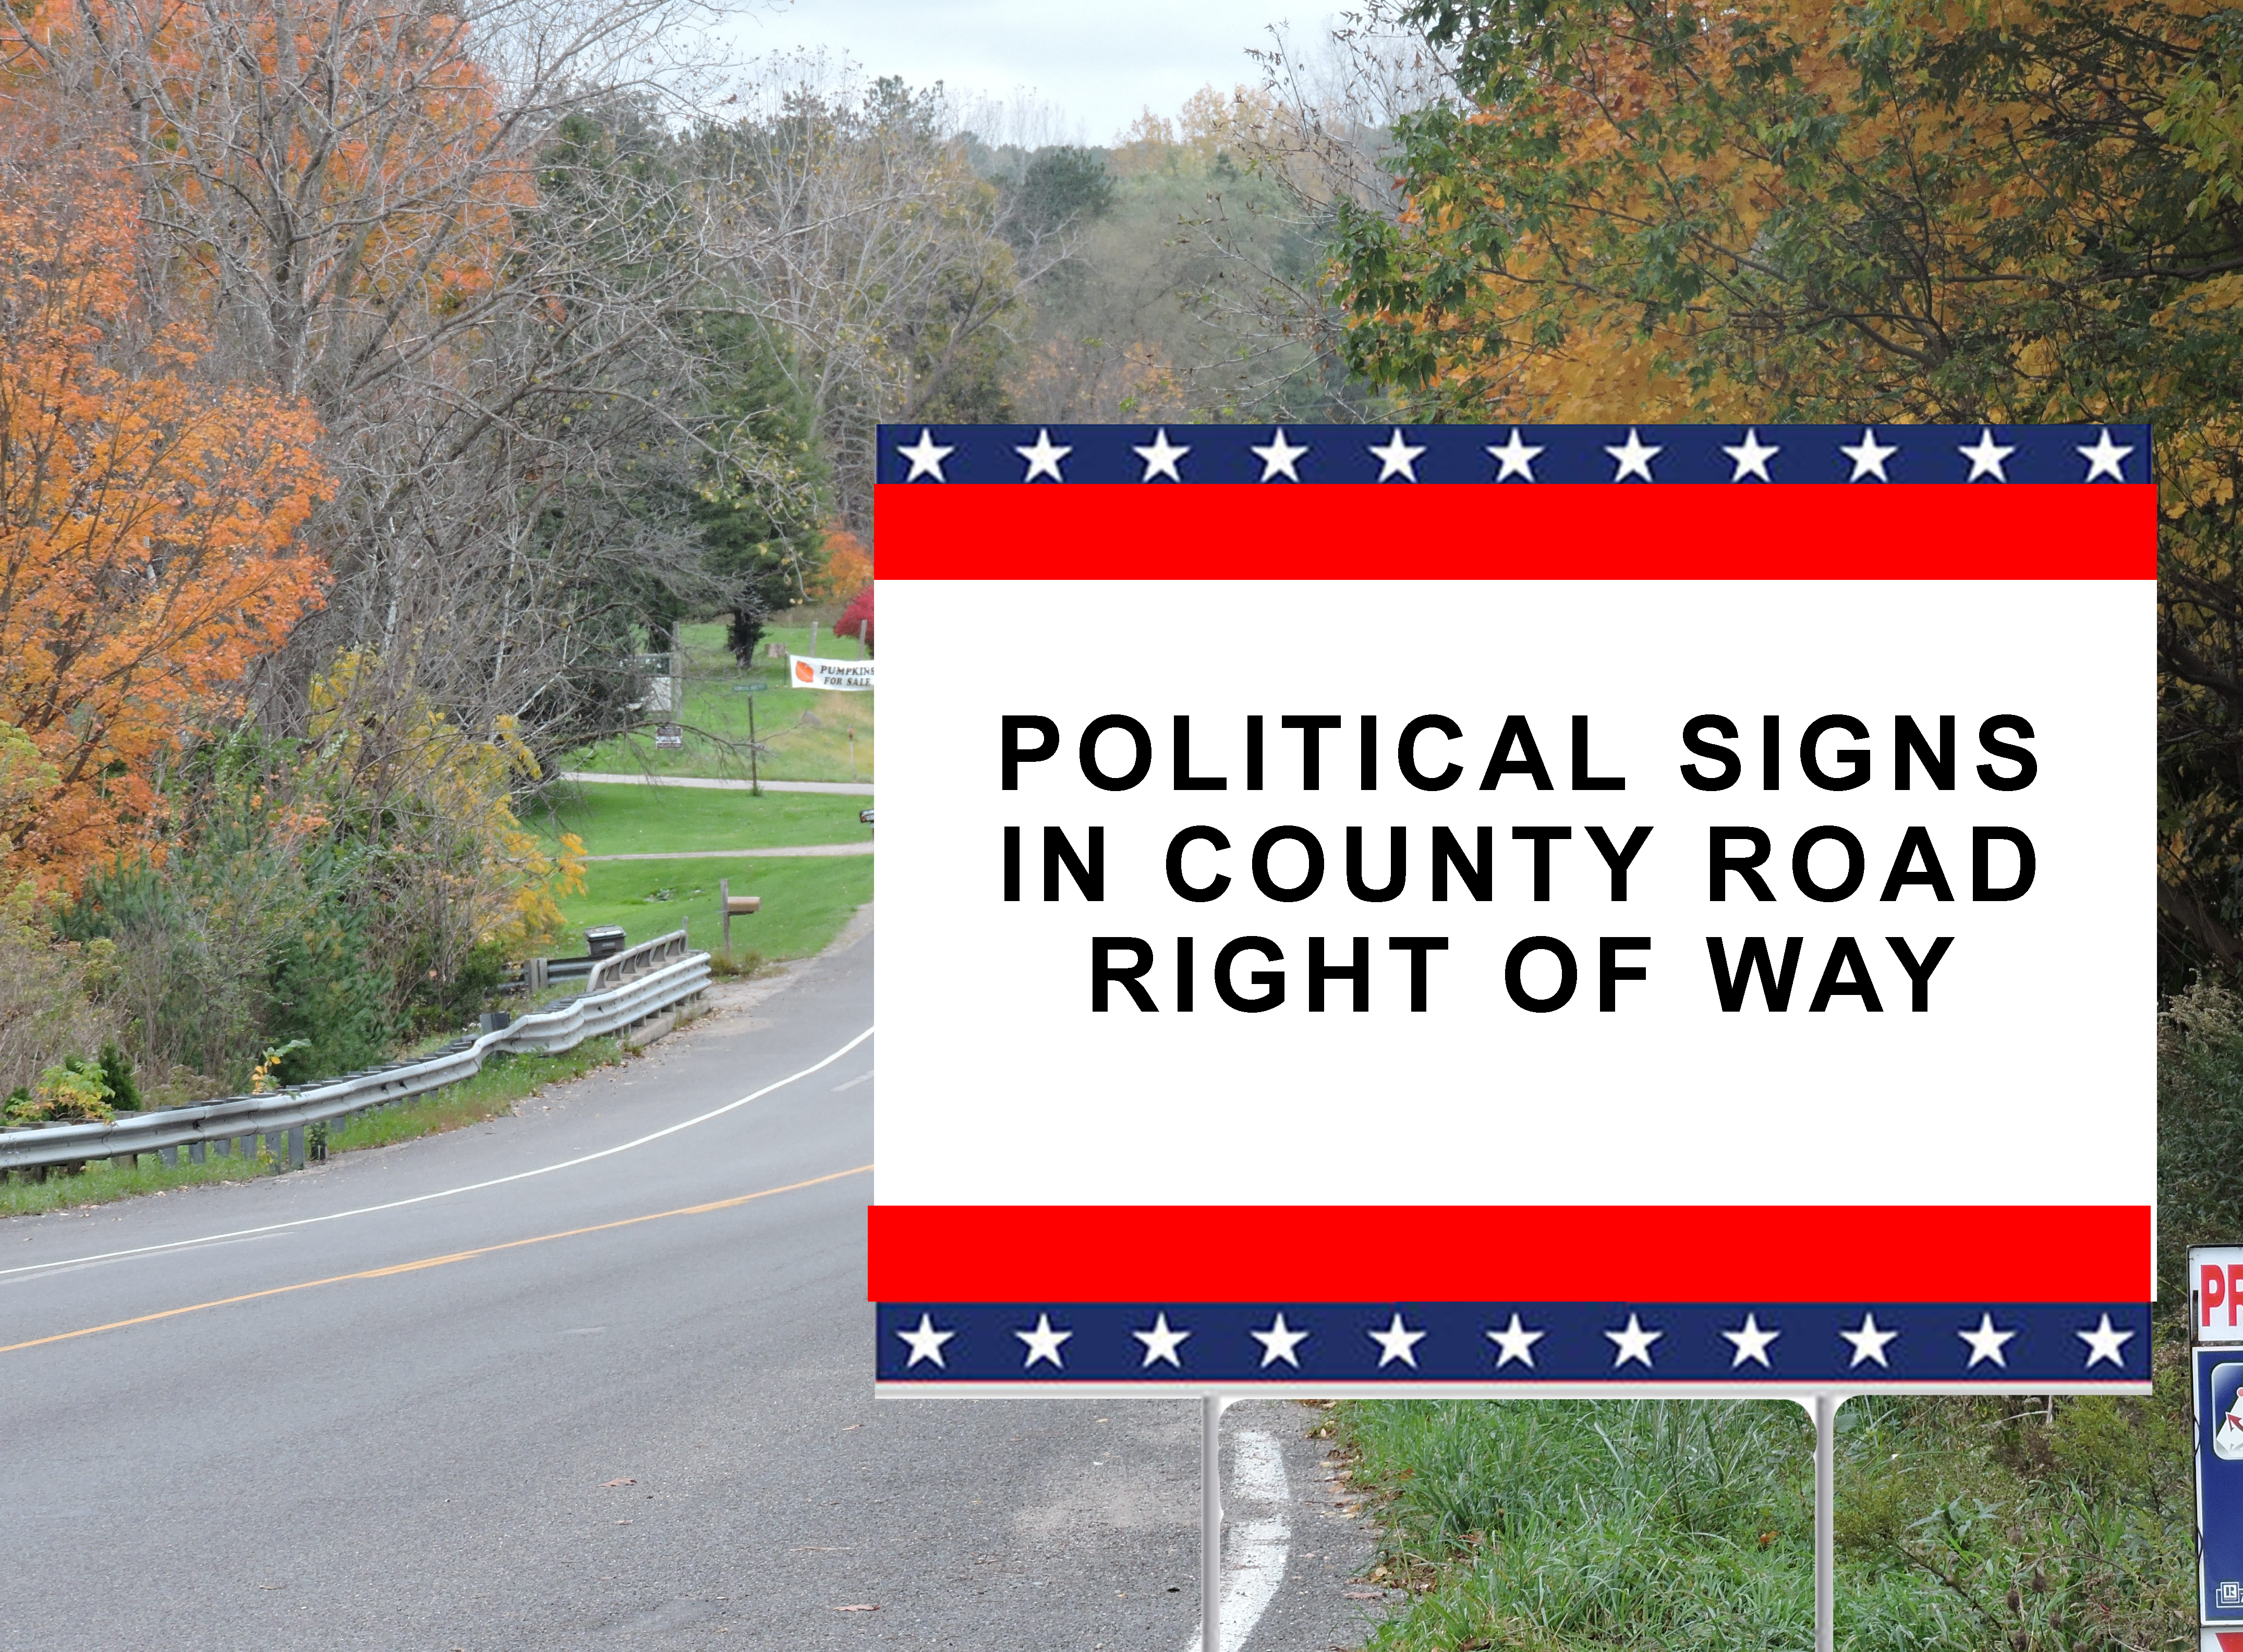 Elections Are Coming: Here's the Criteria for Political Signs in County Road ROW